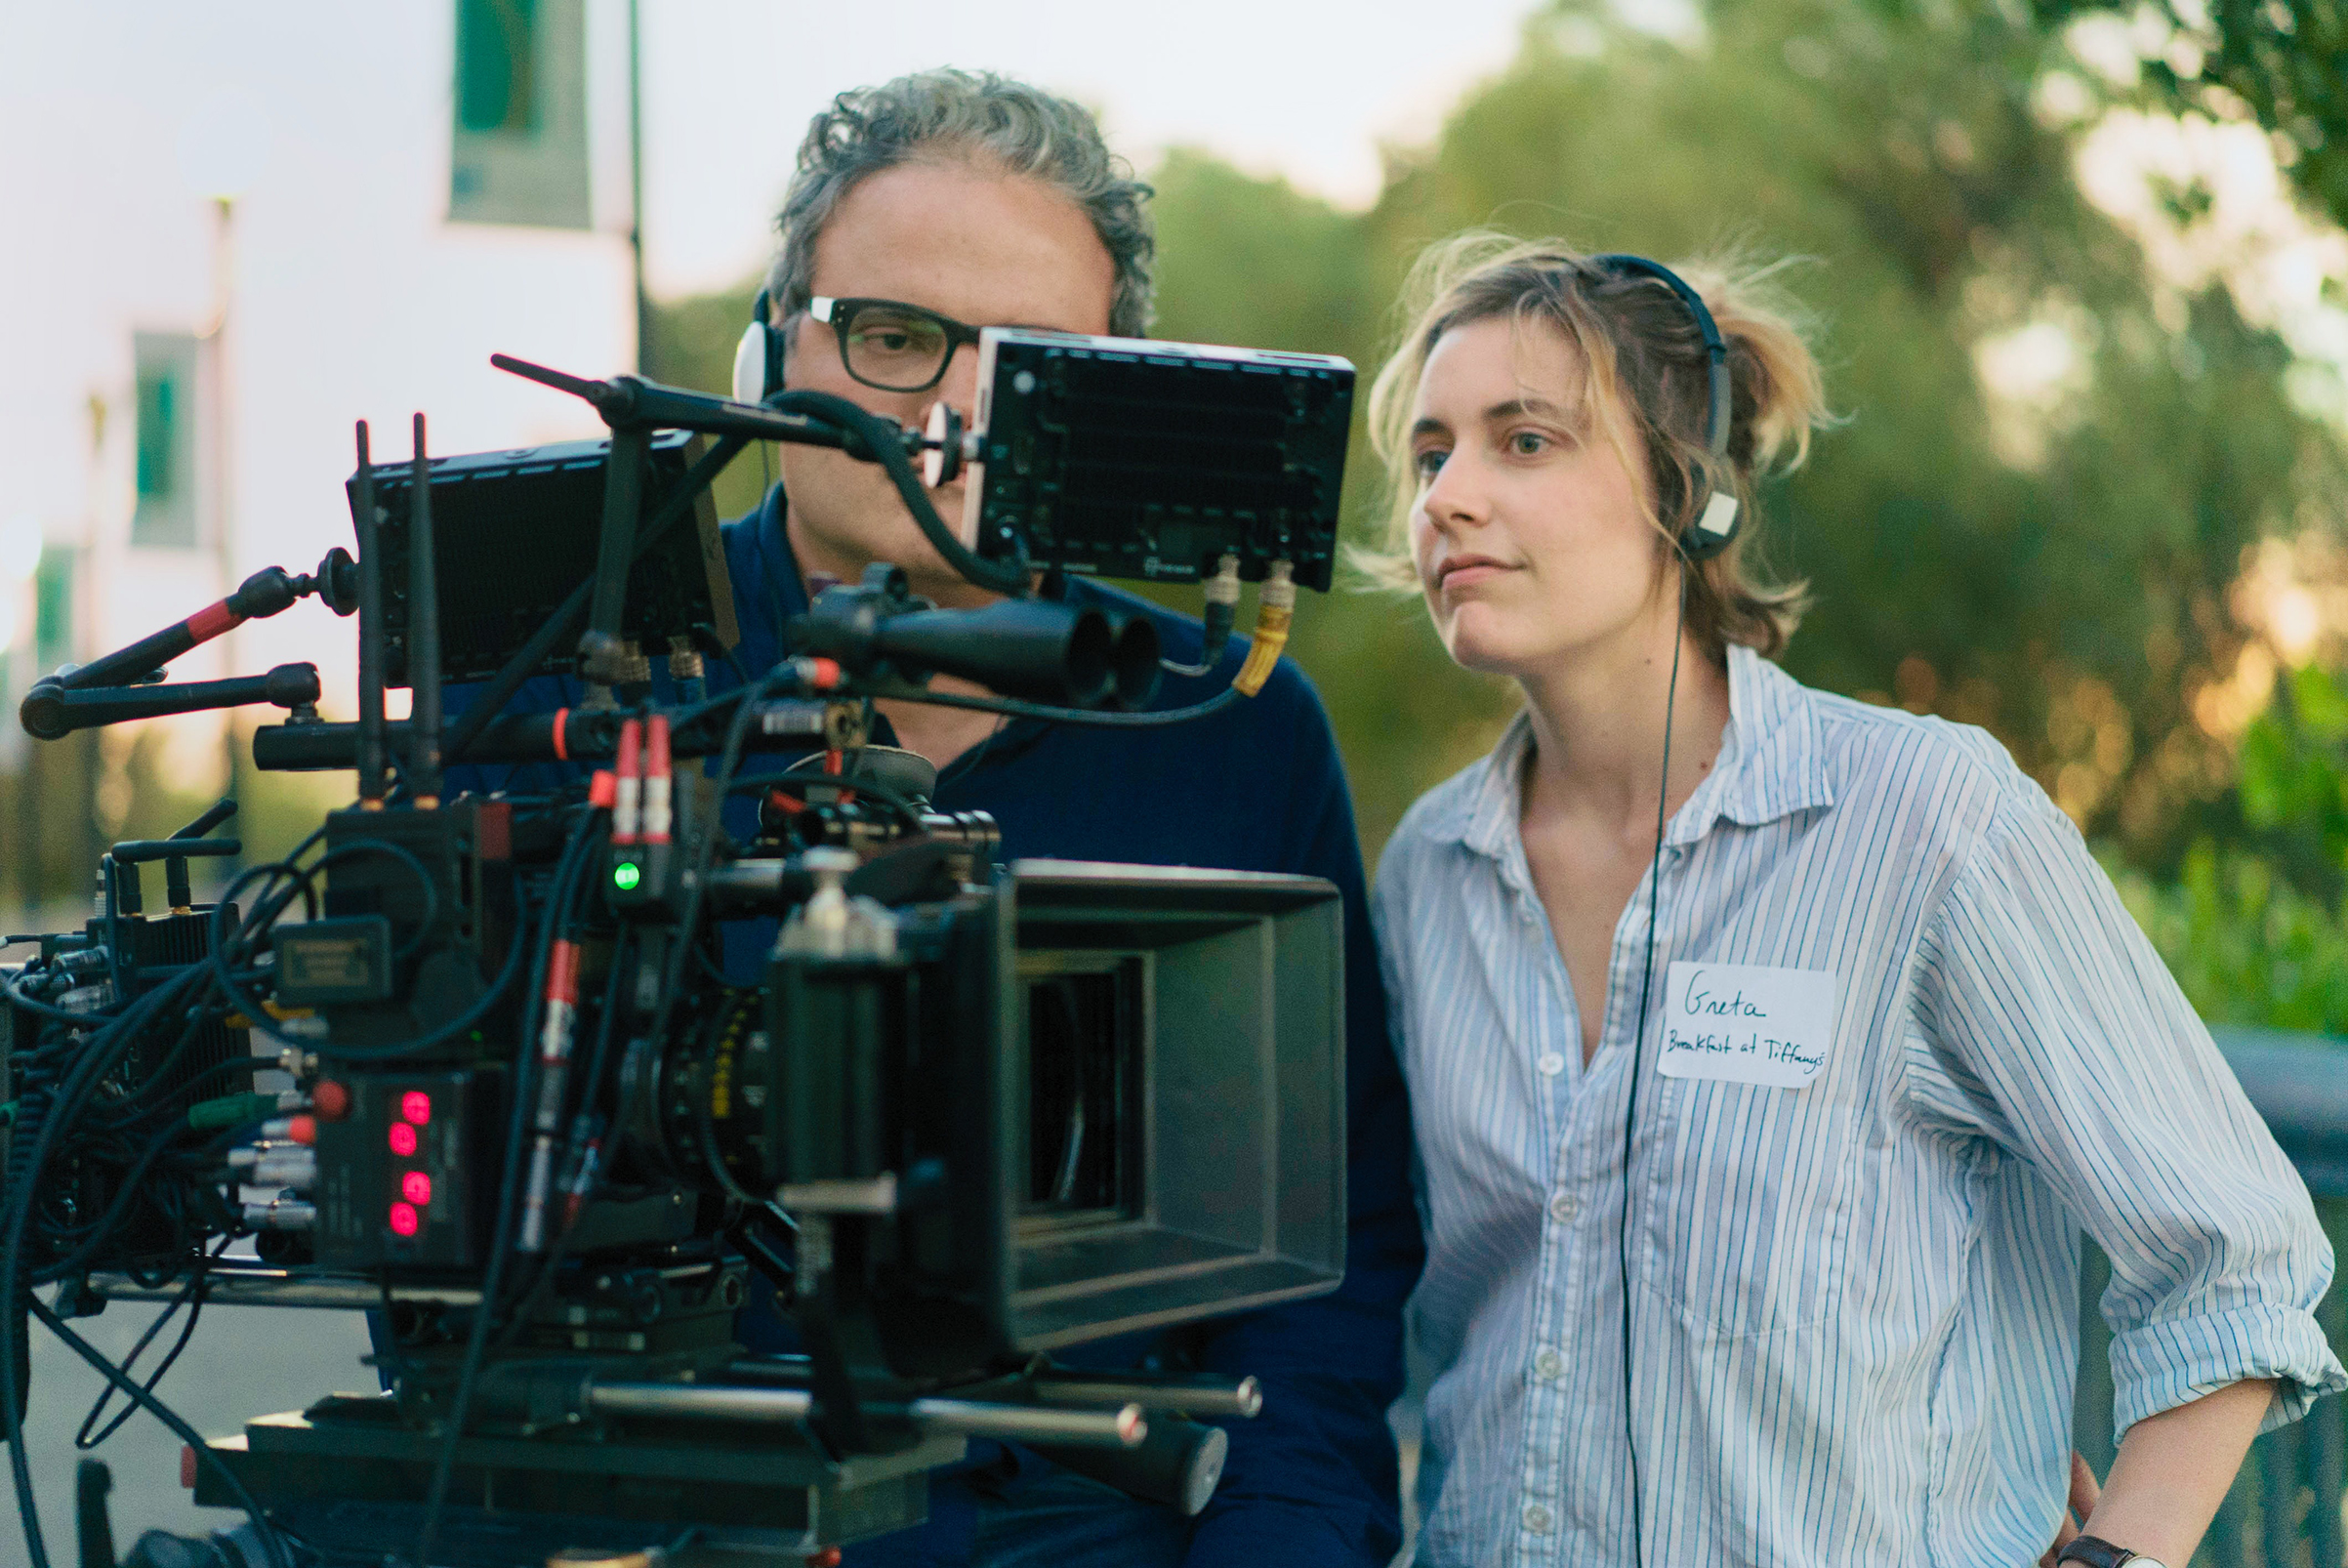 Gerwig had the cast and crew of Lady Bird wear name tags to create a warm atmosphere on set